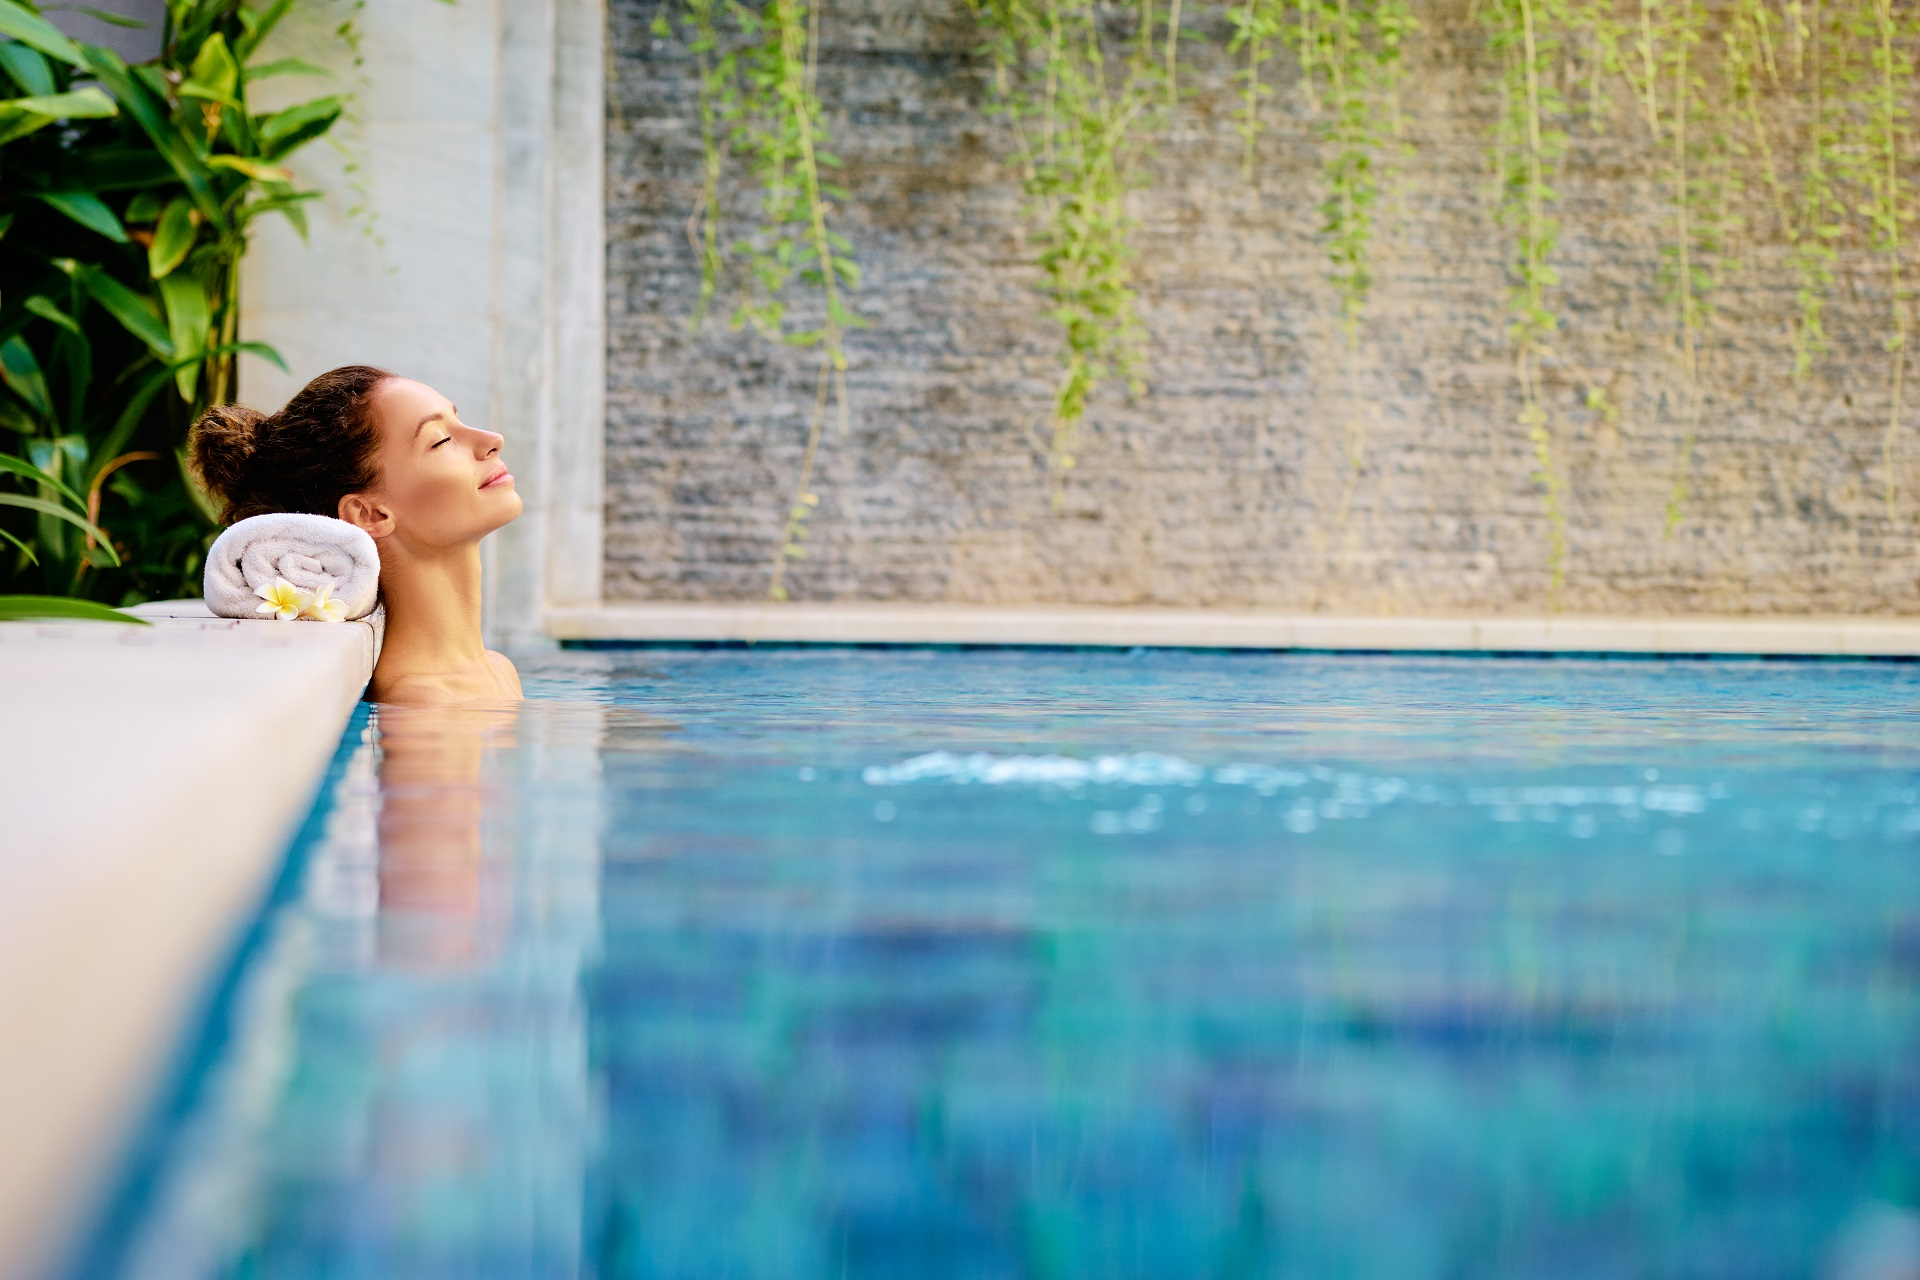 Reiseziele November_Wellness_Therme Erding